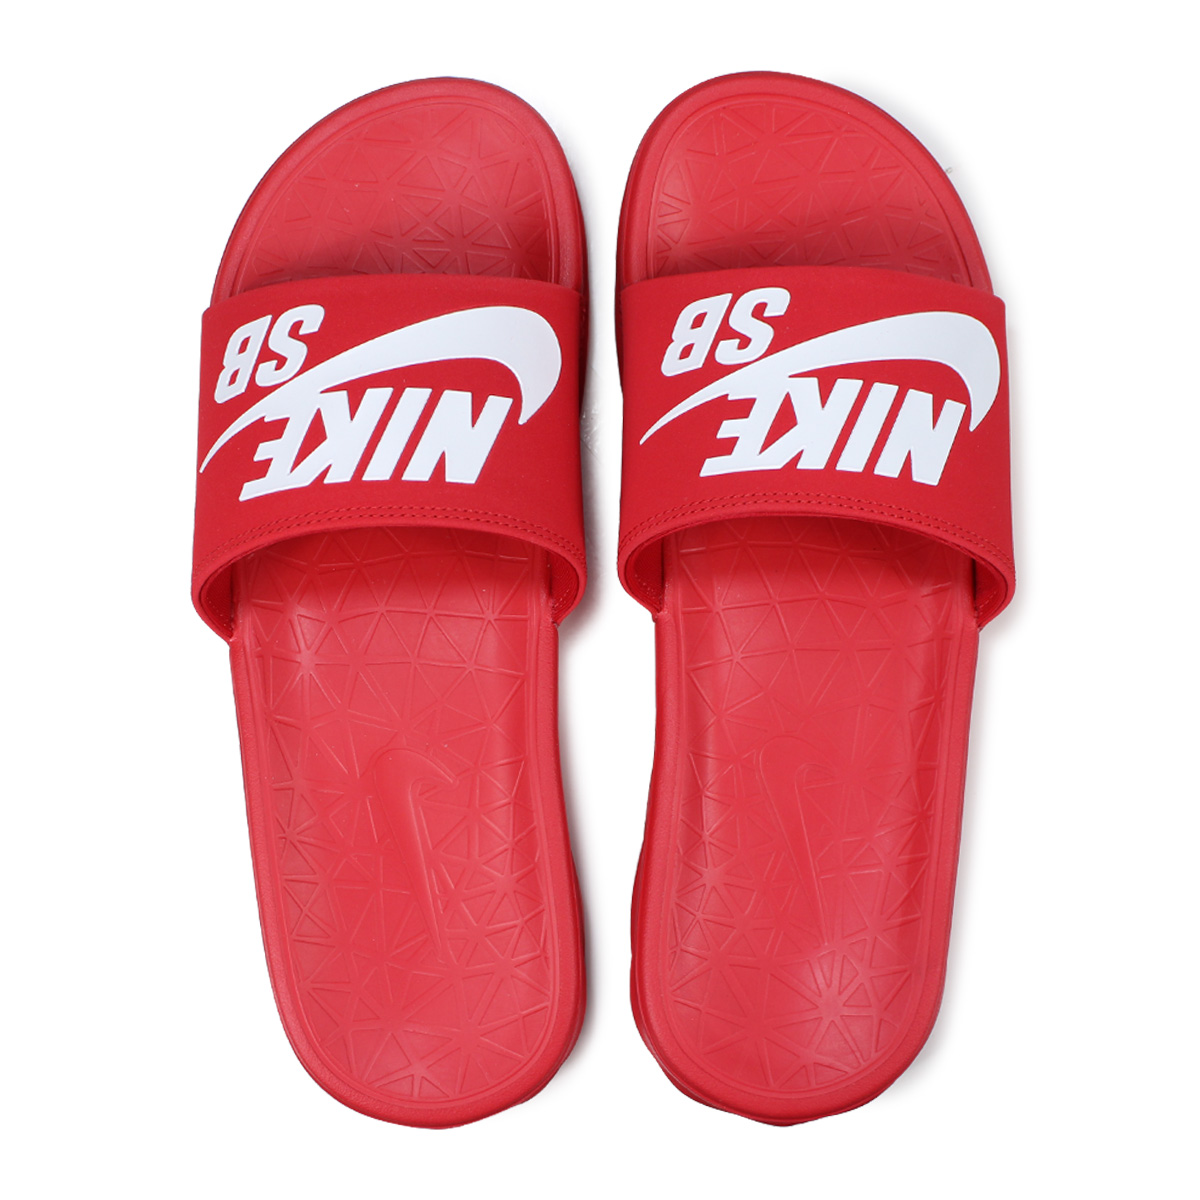 sports shoes 8696f 6bd8d NIKE BENASSI SOLARSOFT SLIDE Nike SB サンダルベナッシシャワーサンダルスポーツメンズレディース  840,067-601 red [load planned Shinnyu load in reservation product 6/16  containing]